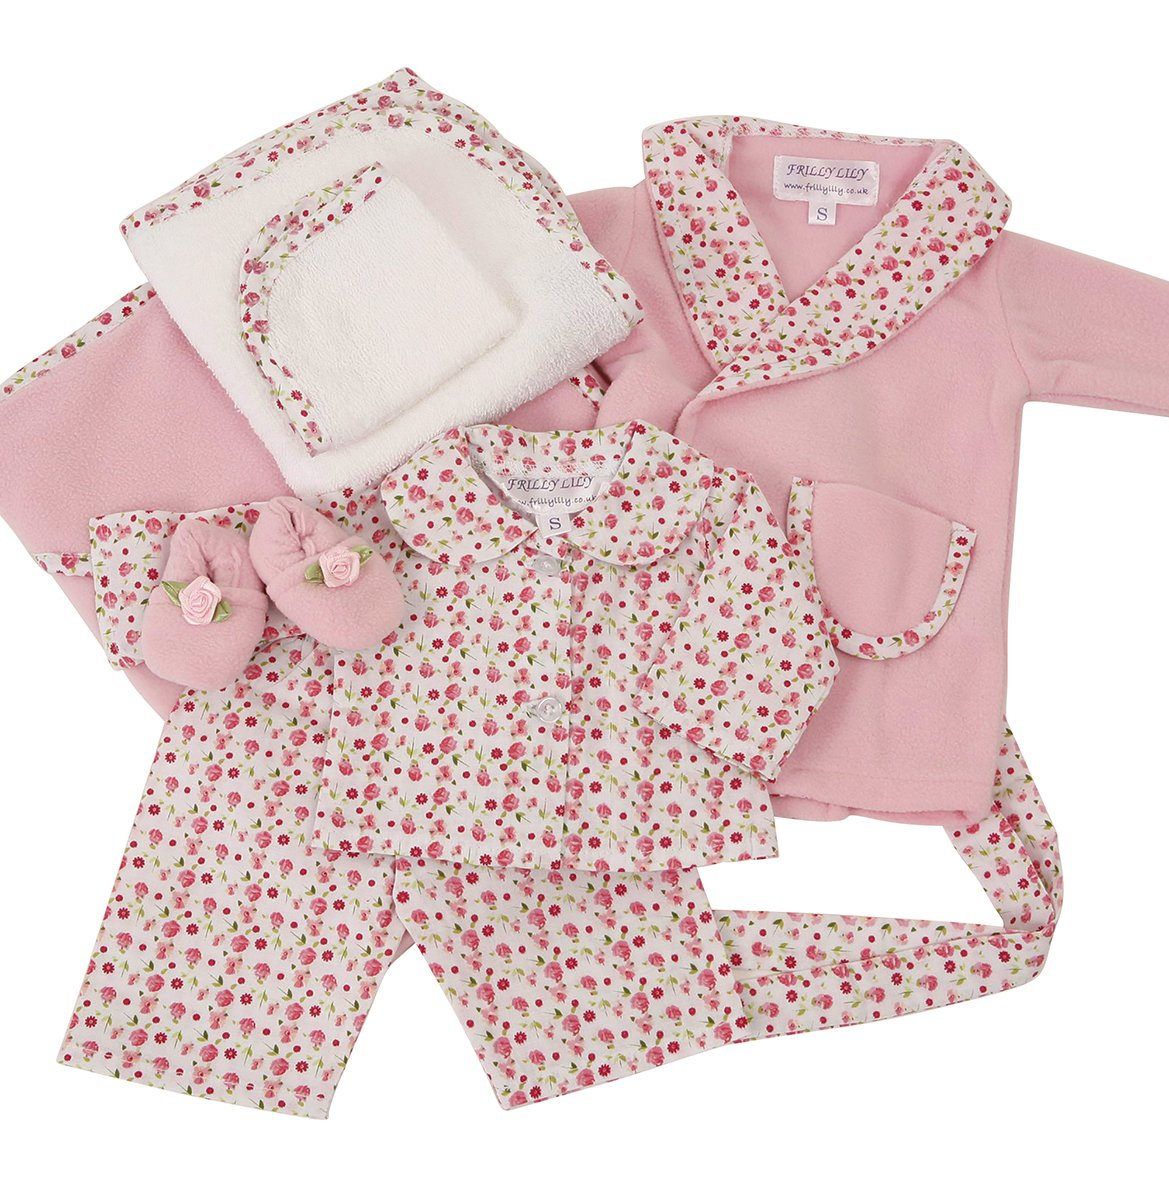 Frilly Lily COMPLETE PINK NIGHTIME SET FOR MEDIUM DOLLS AND BEARS [SNUGGLE BLANKET,TOWEL SET,PYJAMAS,SLIPPERS AND DRESSING GOWN,TO FIT DOLLS SUCH AS 46 CM BABY ANNABELL